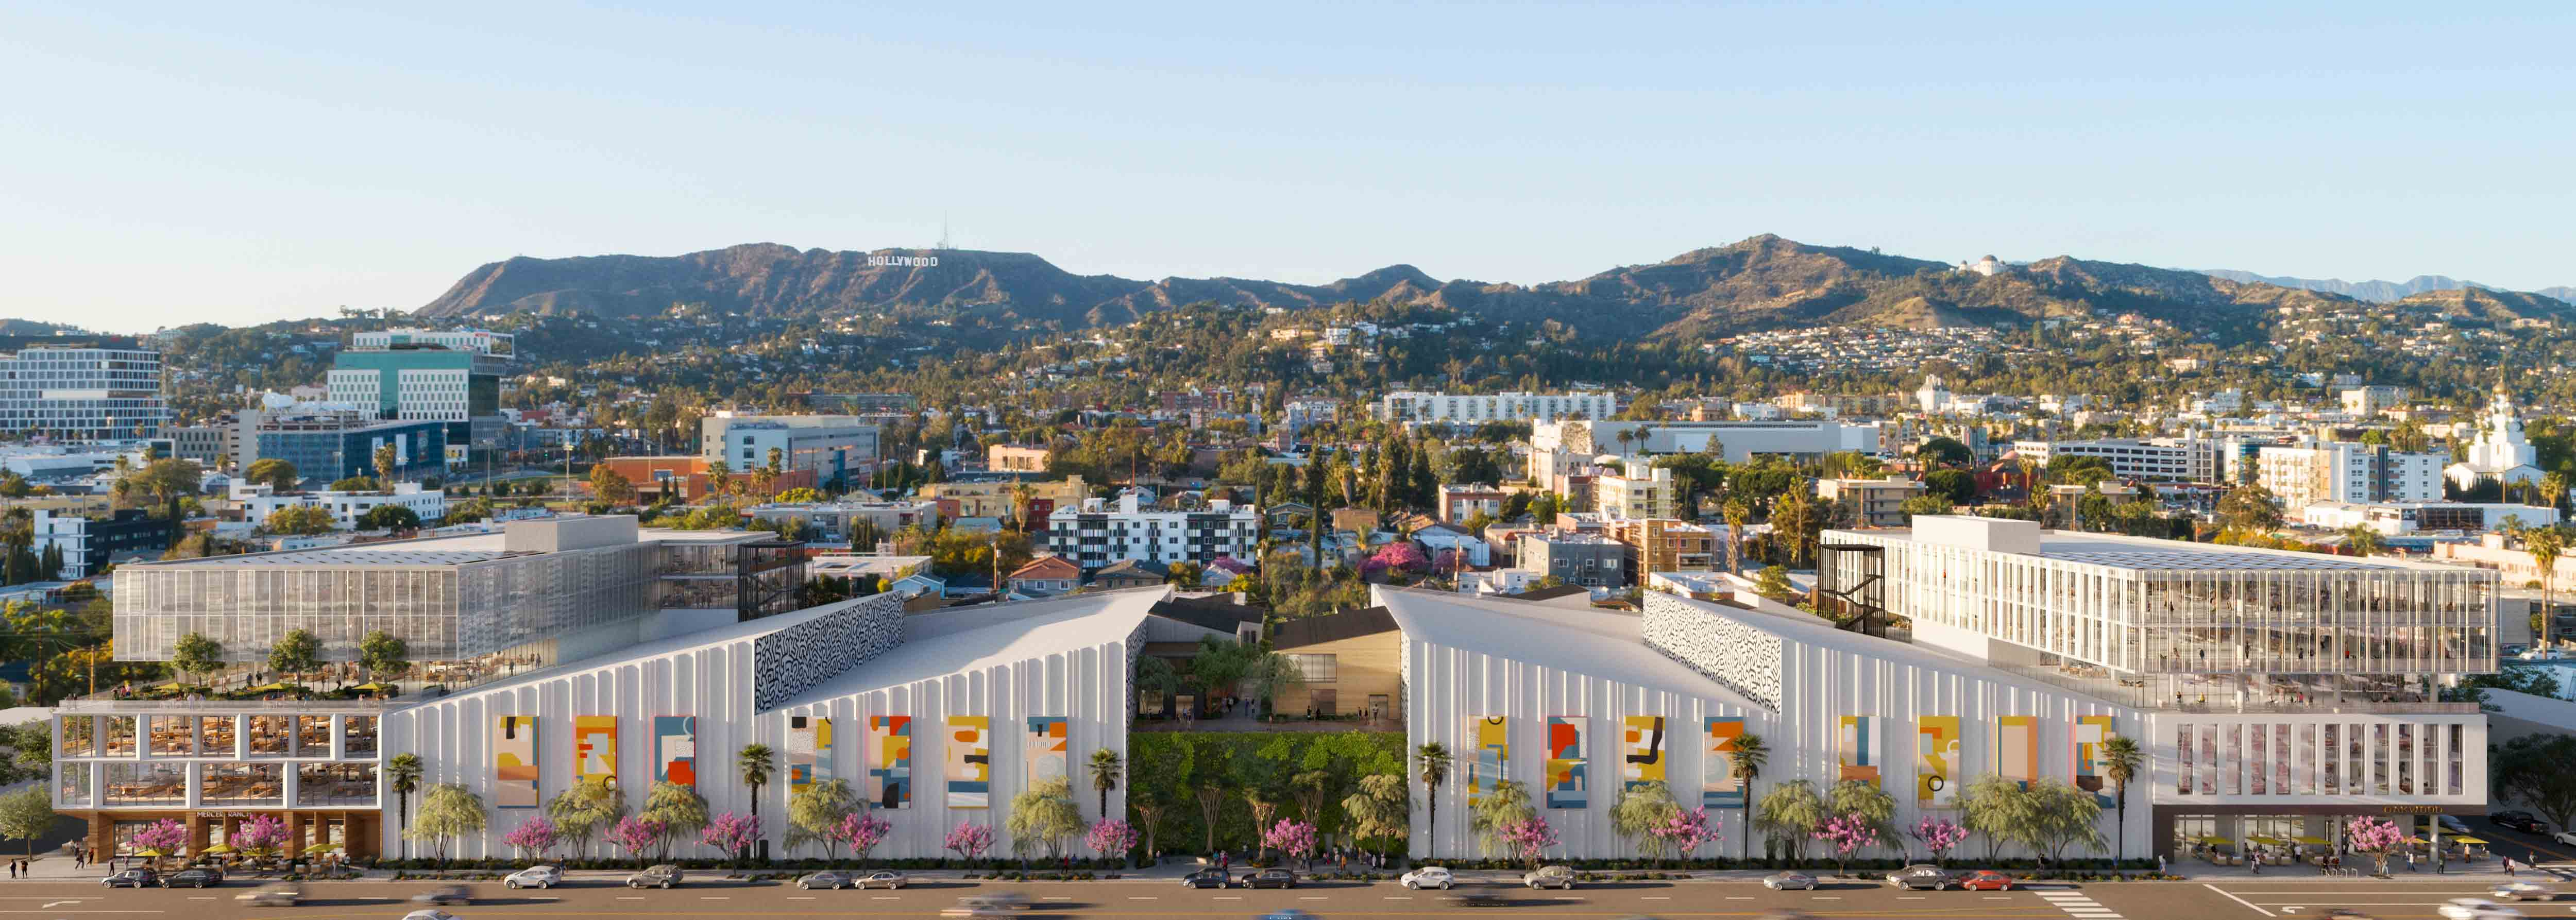 Wide view of Echelon Studios with the Hollywood sign and hills in the backdrop